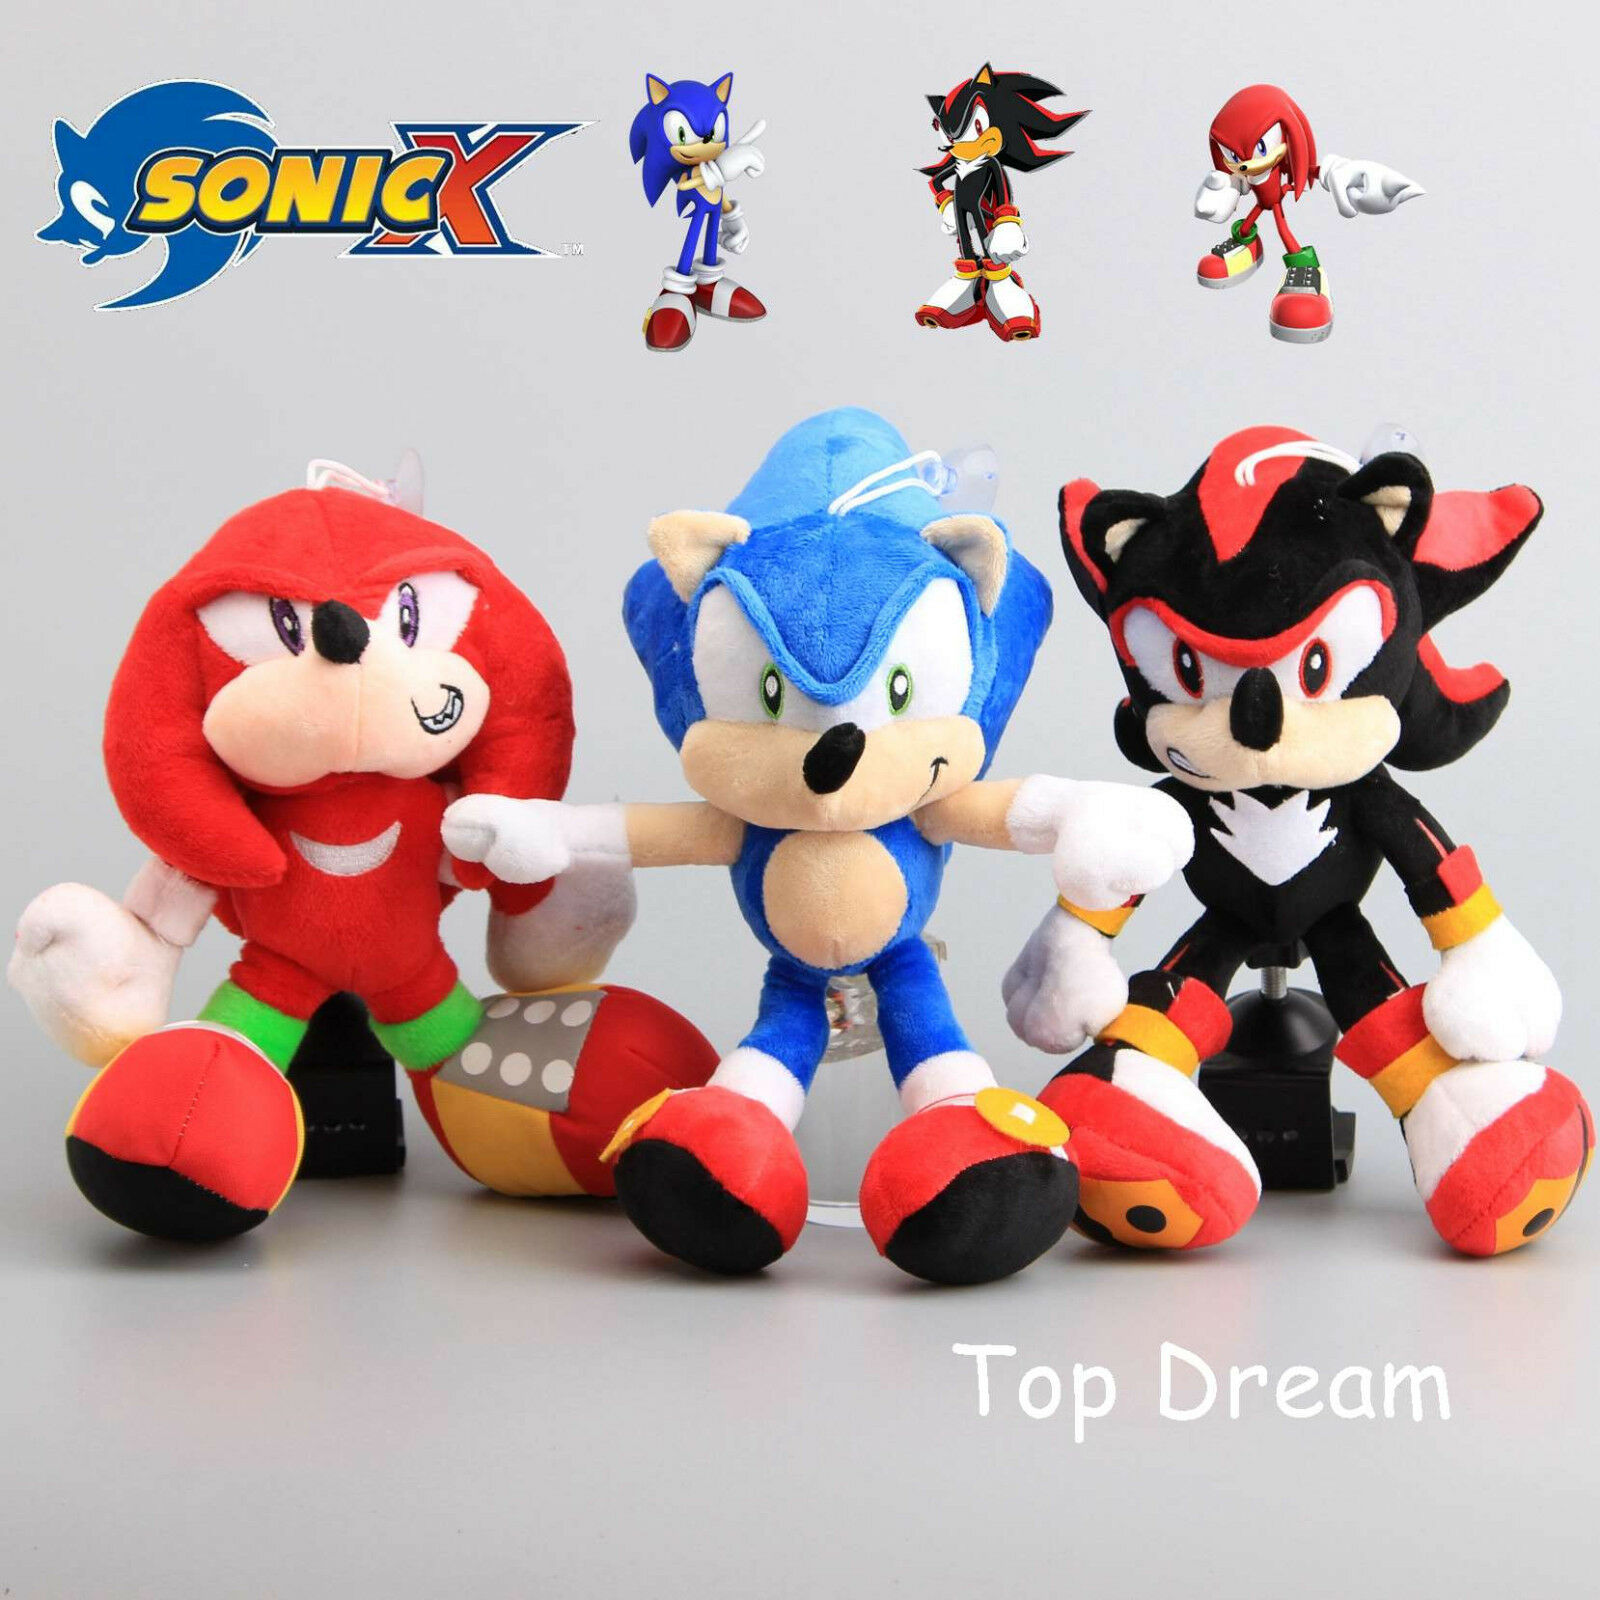 Tv Movie Character Toys Game Sonic The Hedgehog Shadow Hedgehog Knuckles The Echidna Plush Toy Doll 11 Toys Games Tv Movie Character Toys